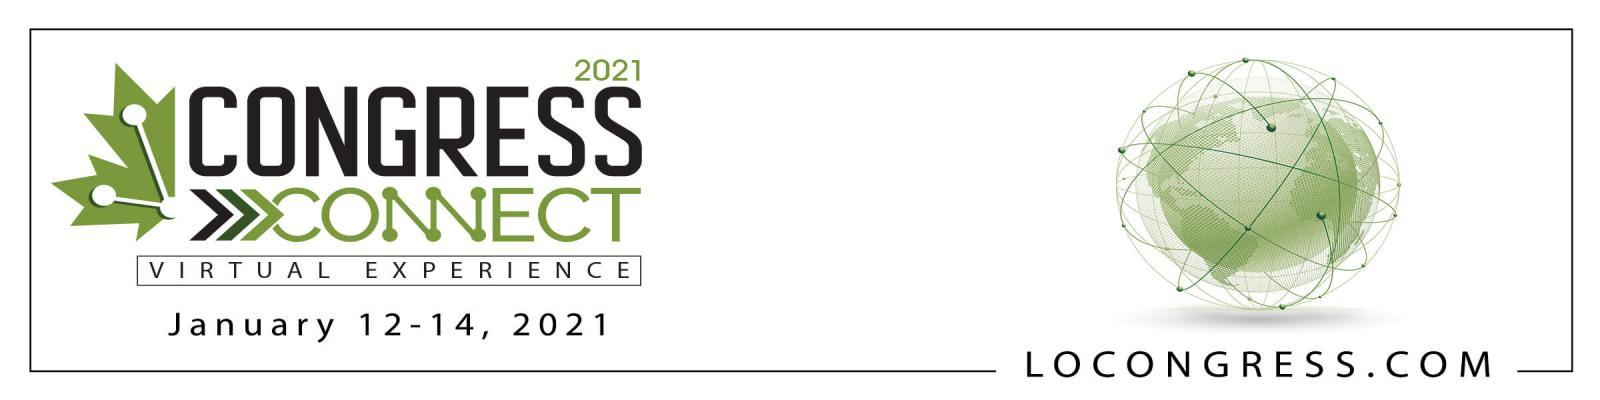 Congress Connect 2021 - Exhibitor Resources